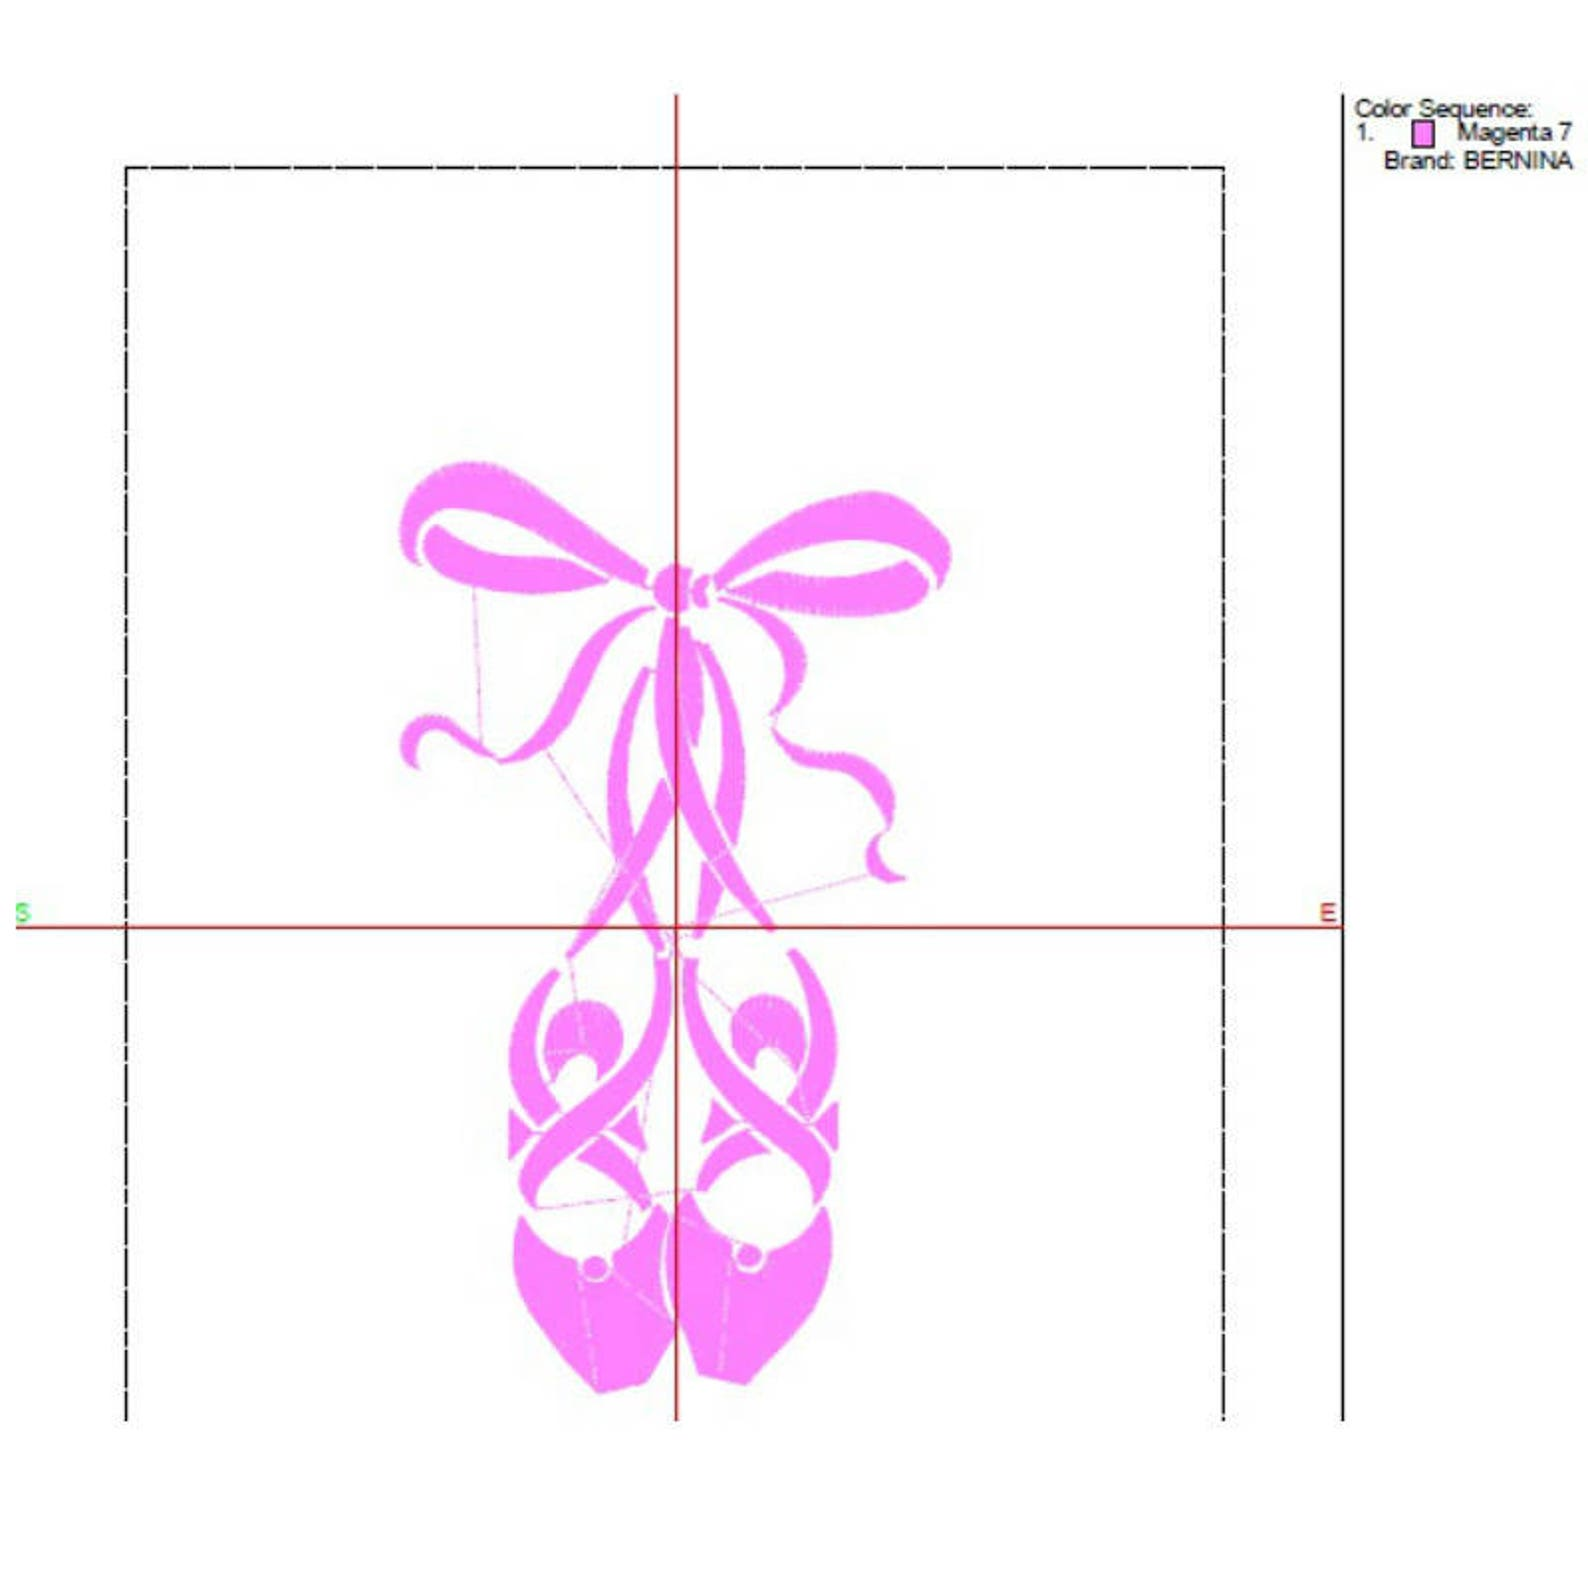 ballerina ballet shoes embroidery machine designs sport pattern digital instant design t-shirt towel dog design hoop file